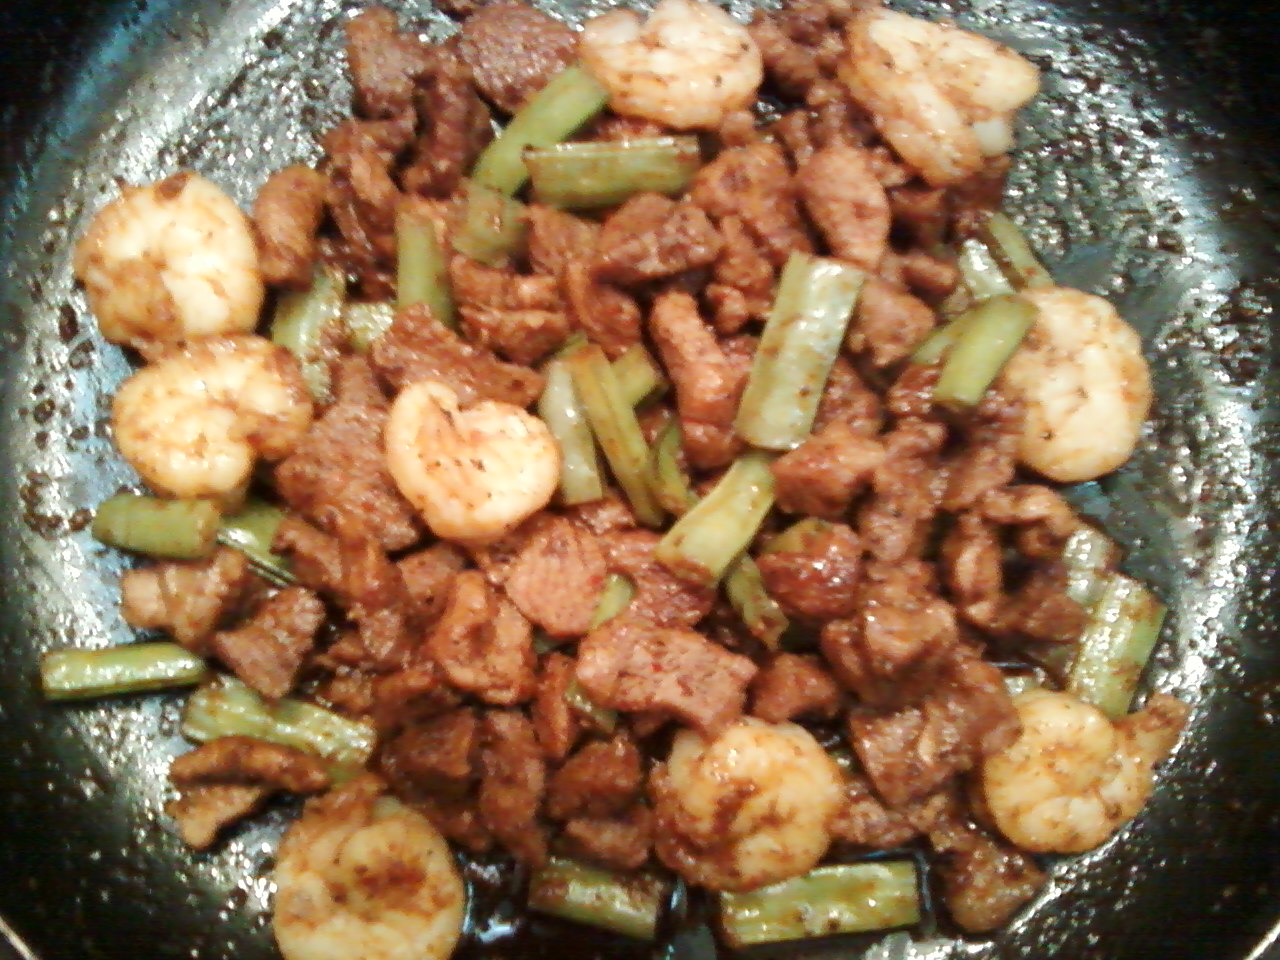 Stir-Fried Pork And Prawns With Wing Beans picture